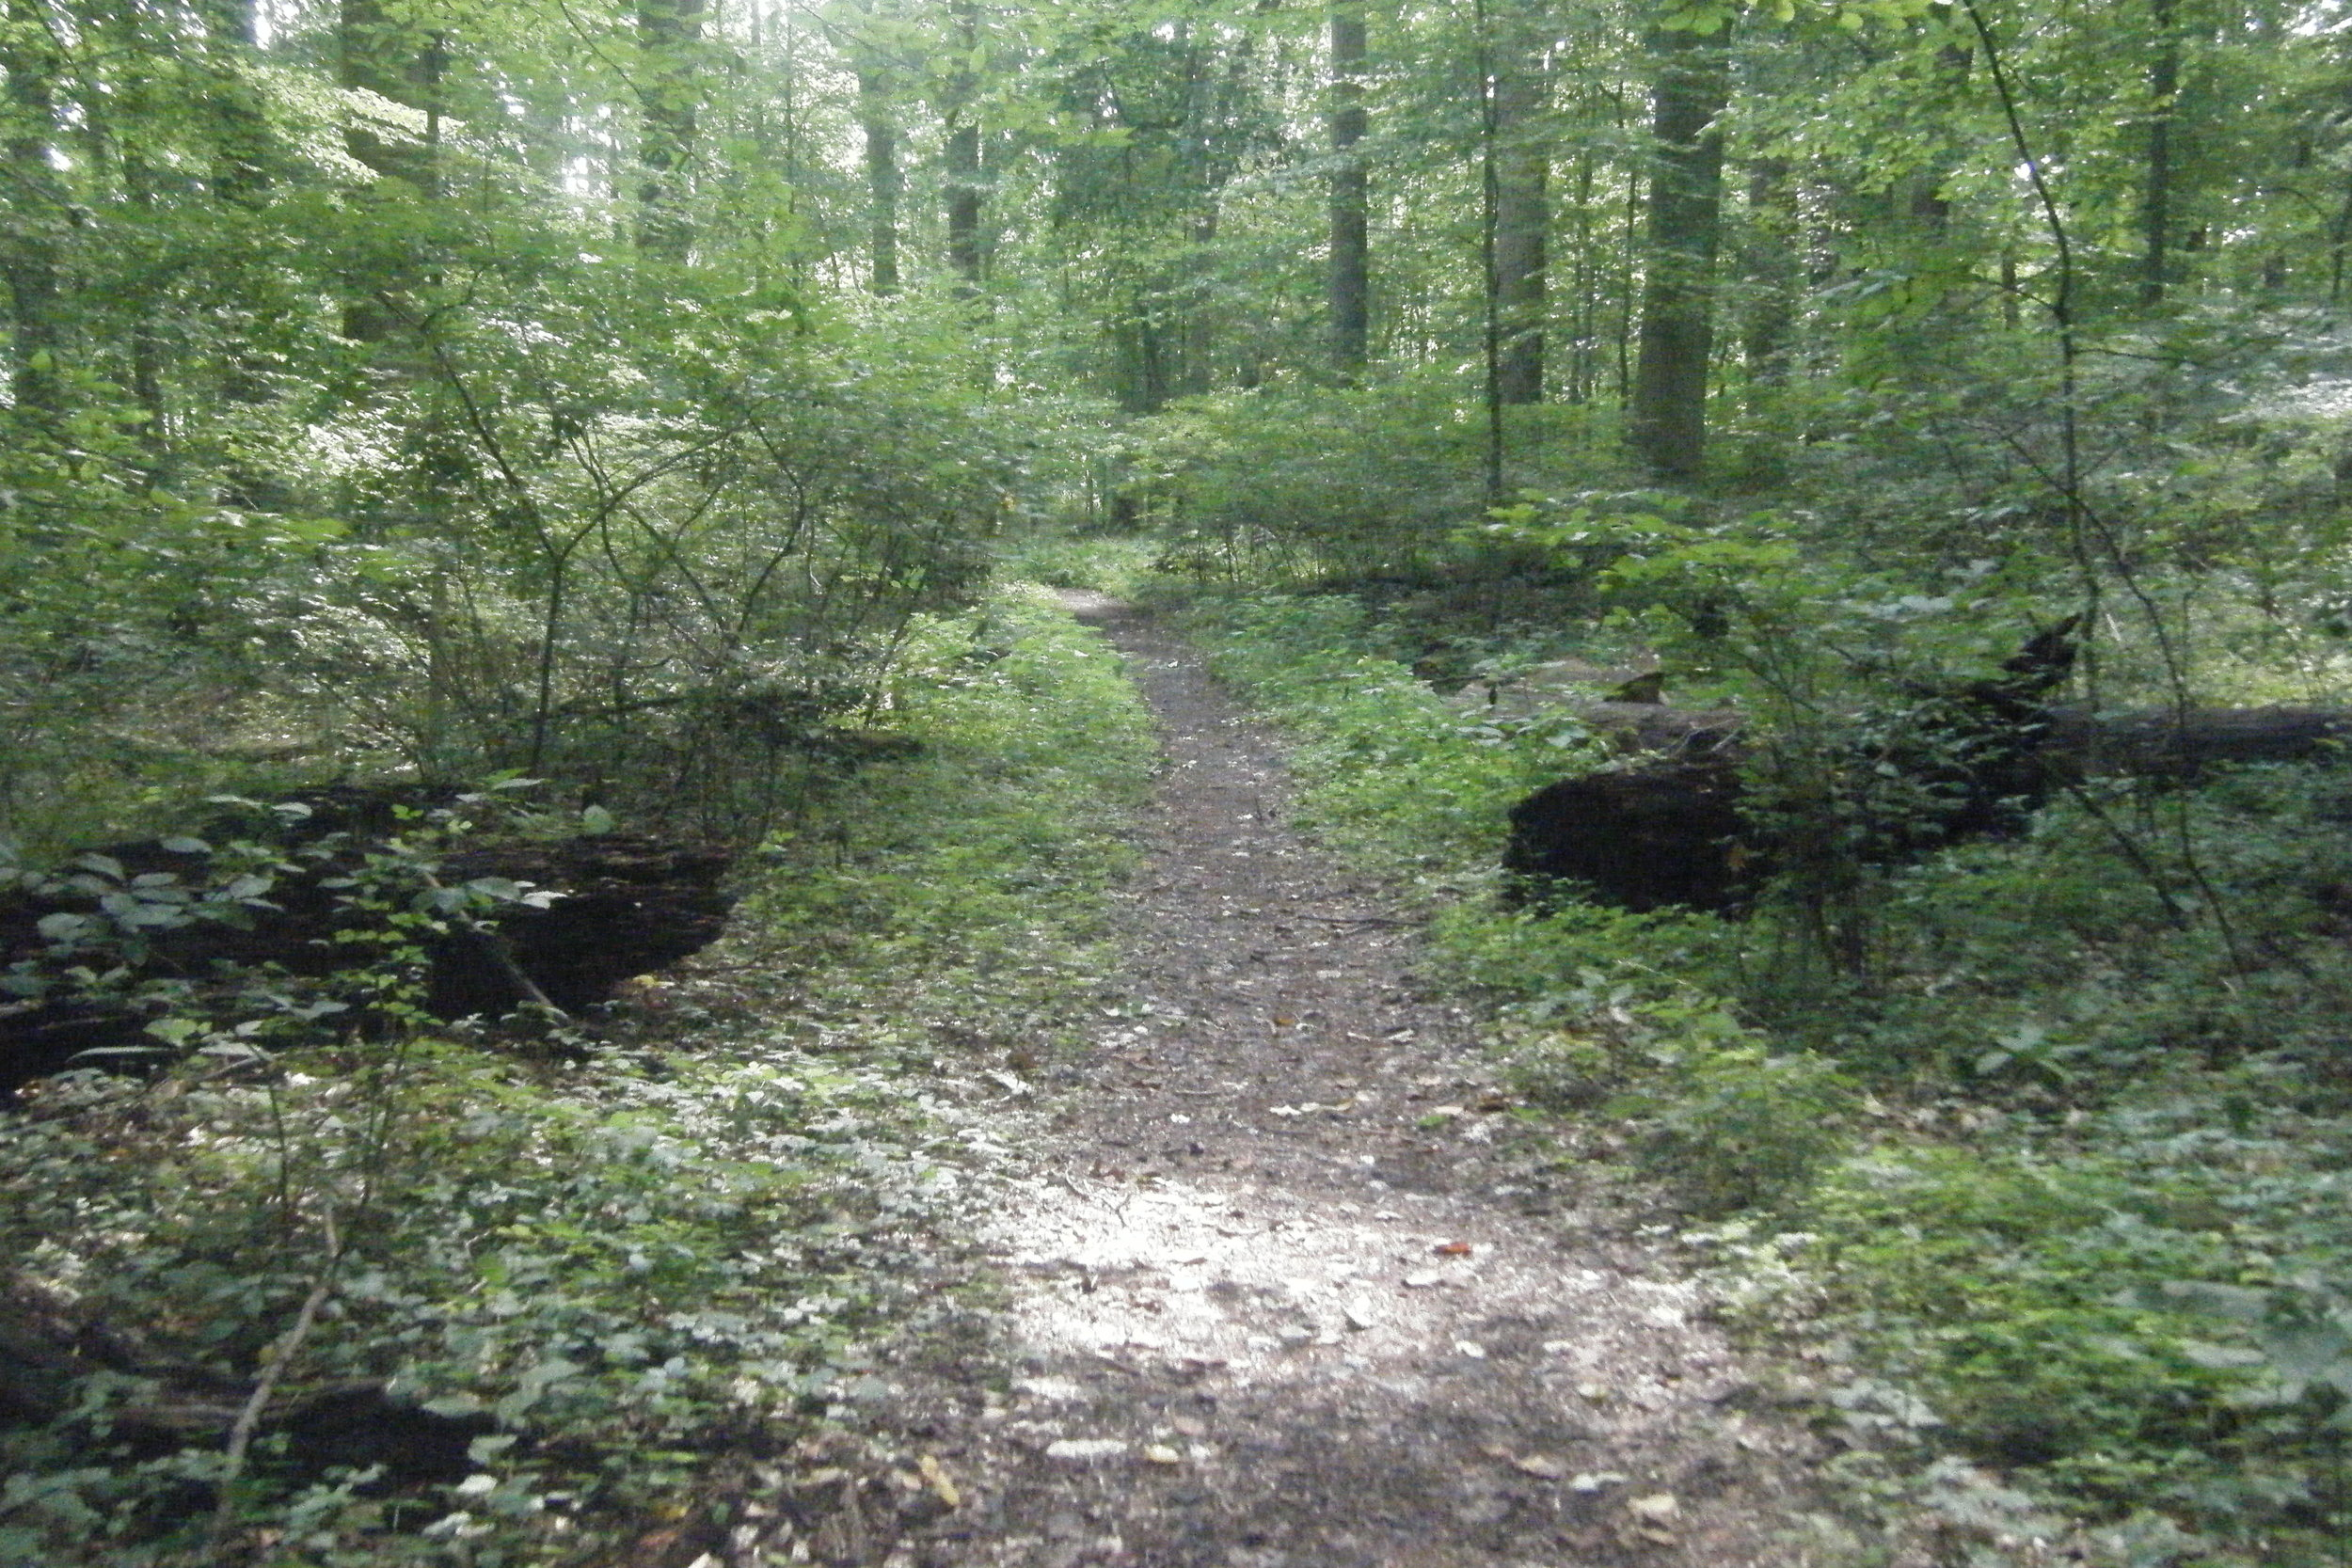 middle_of_trail.JPG